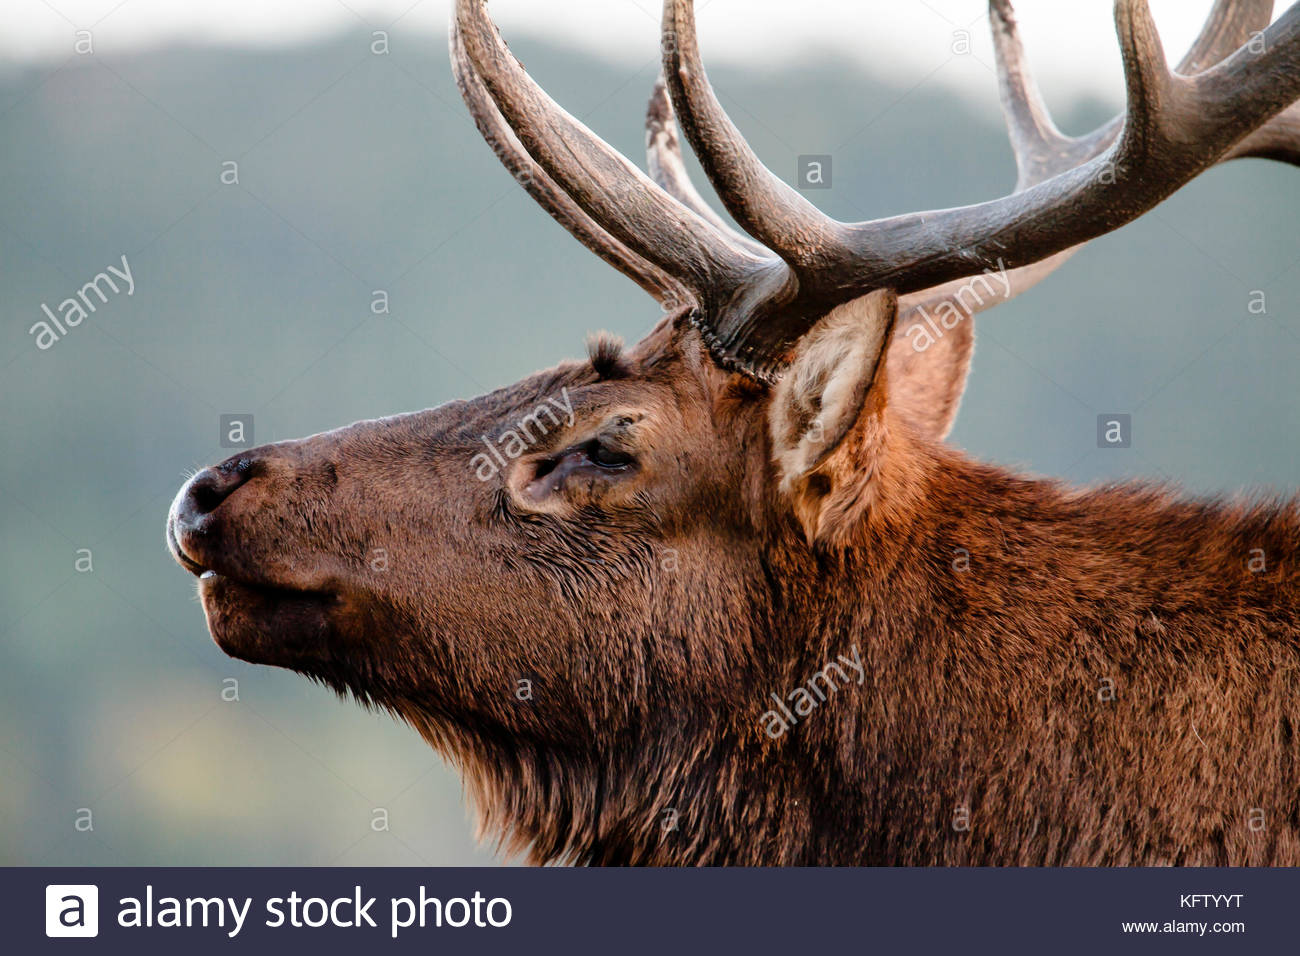 Elk face side